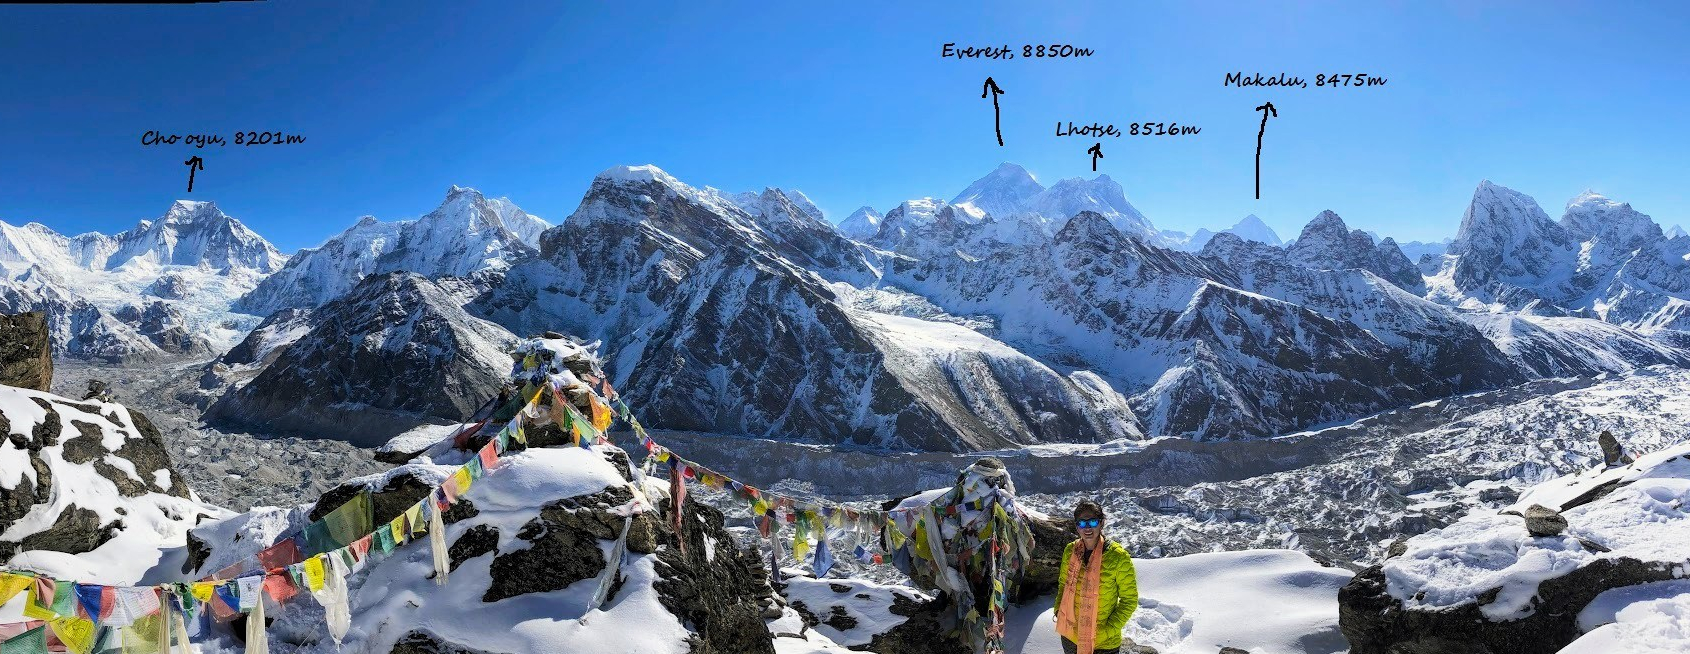 Gokyo, Day 9: An unforgettable scene atop Gokyo Ri